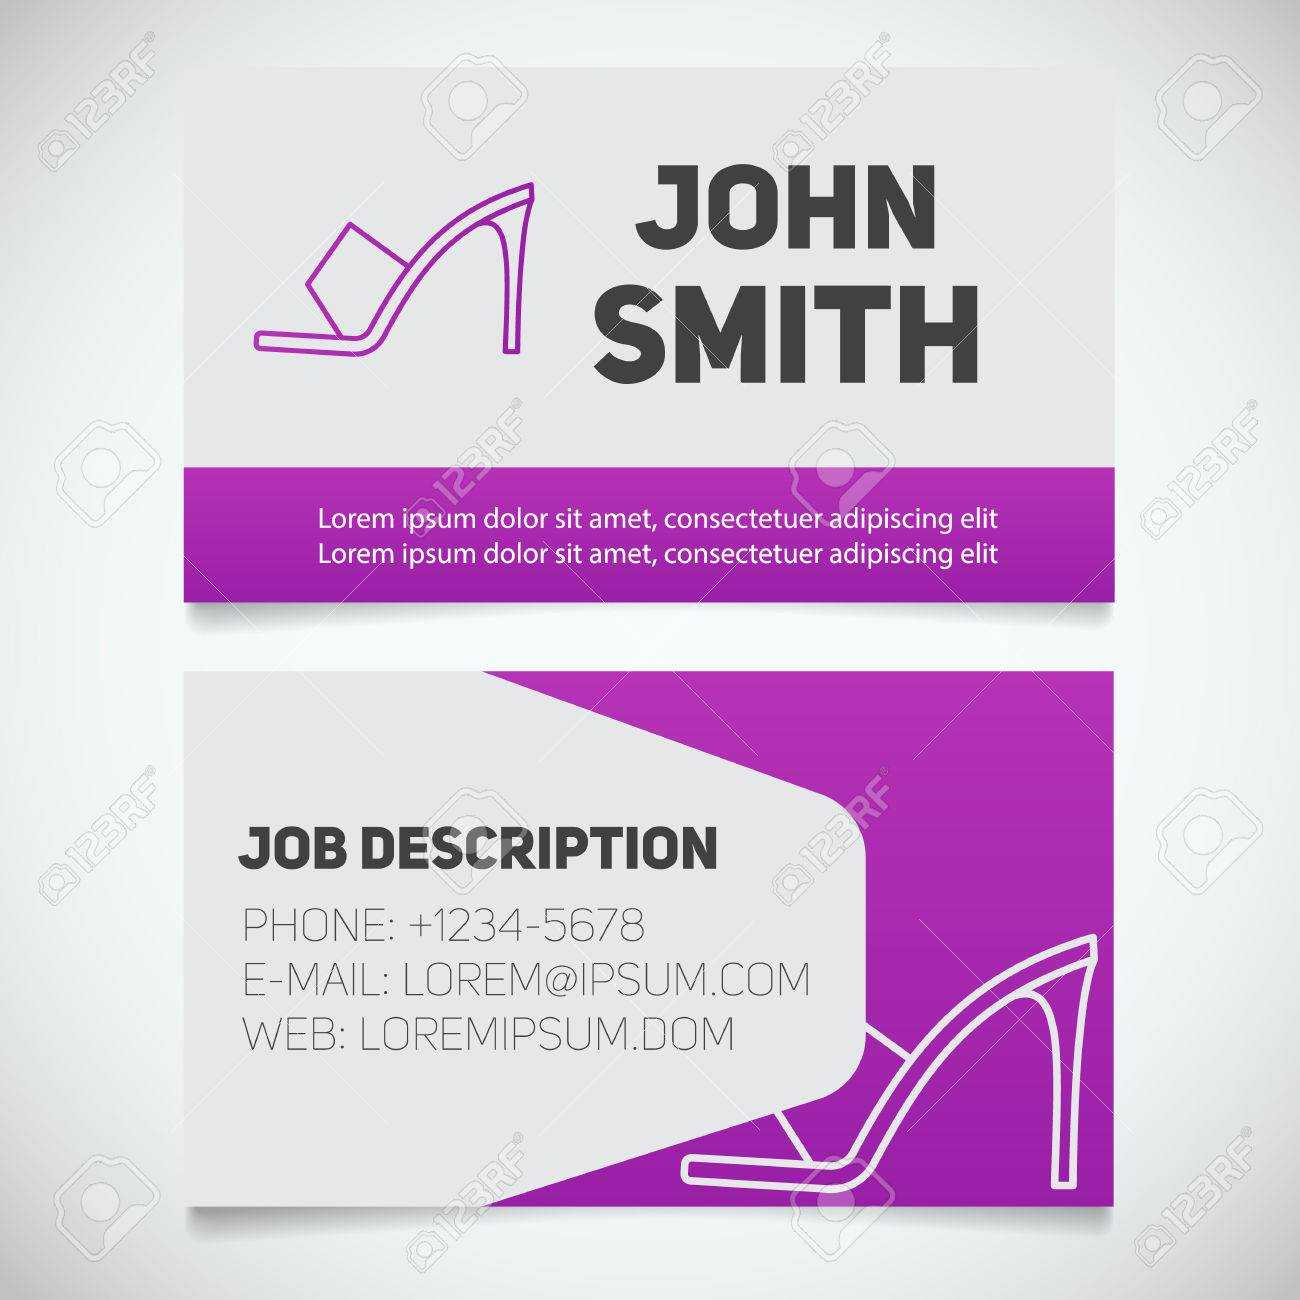 Business Card Print Template With High Heel Shoe Logo. Manager Regarding High Heel Template For Cards